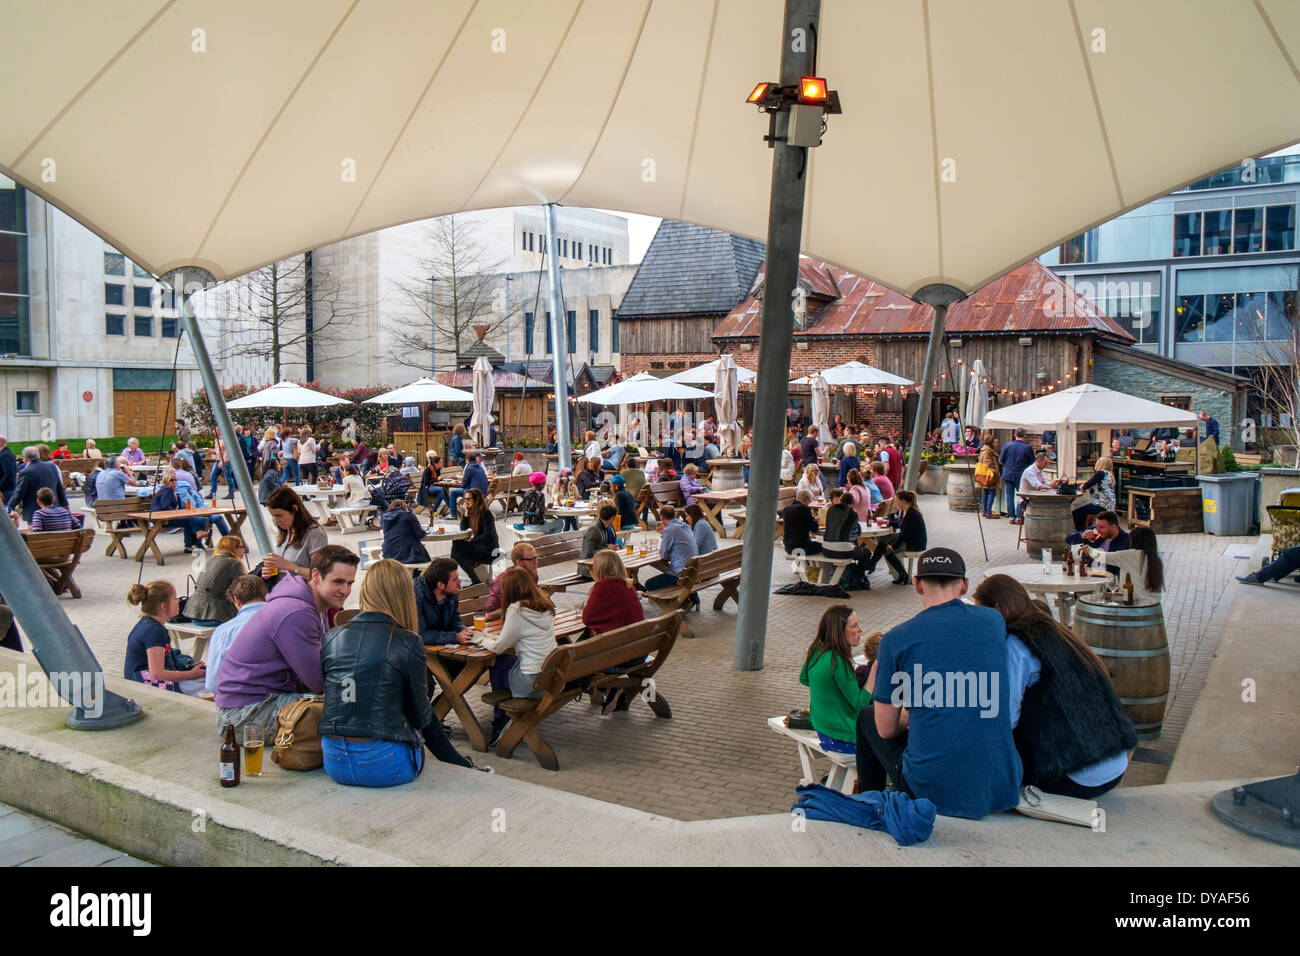 The Oast House Pub outside the Crown Court in Avenue Courtyard, Spinningfields, Manchester, England, UK - Stock Image